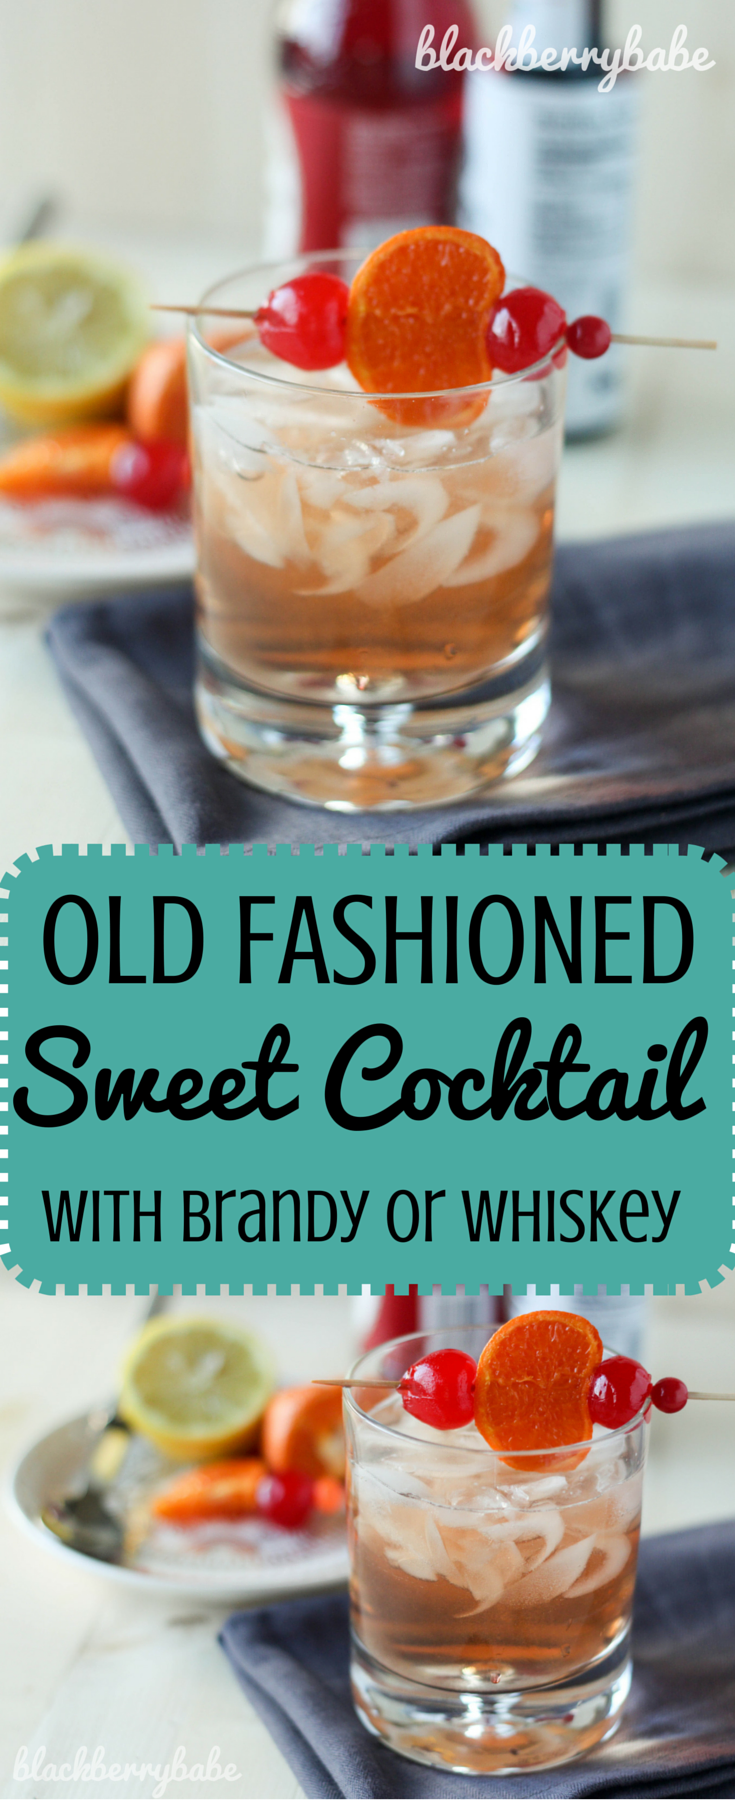 Old Fashioned Sweet Cocktail with Brandy or Whiskey (1 ...